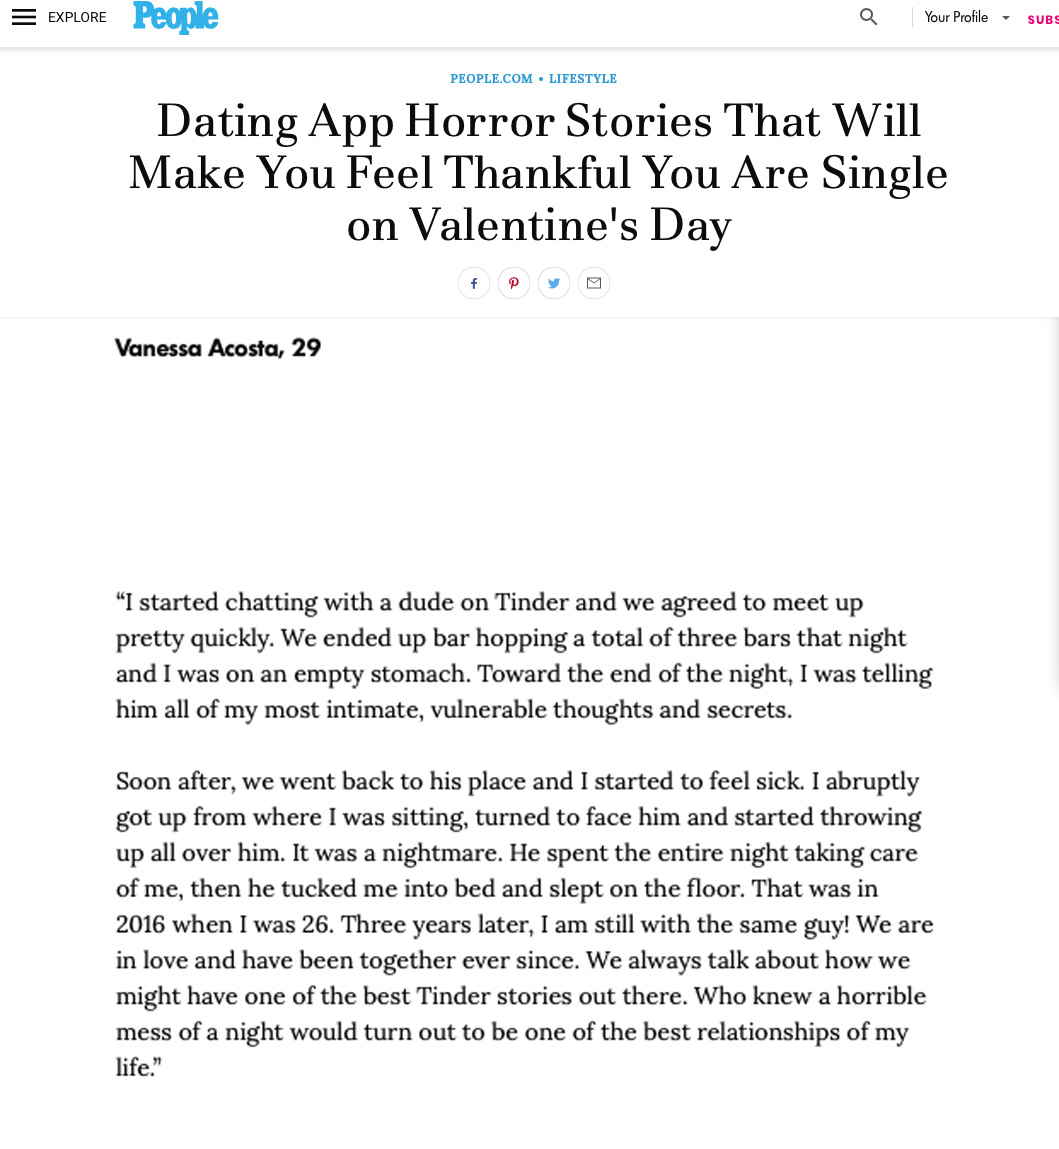 https://people.com/lifestyle/valentines-day-dating-app-horror-stories/